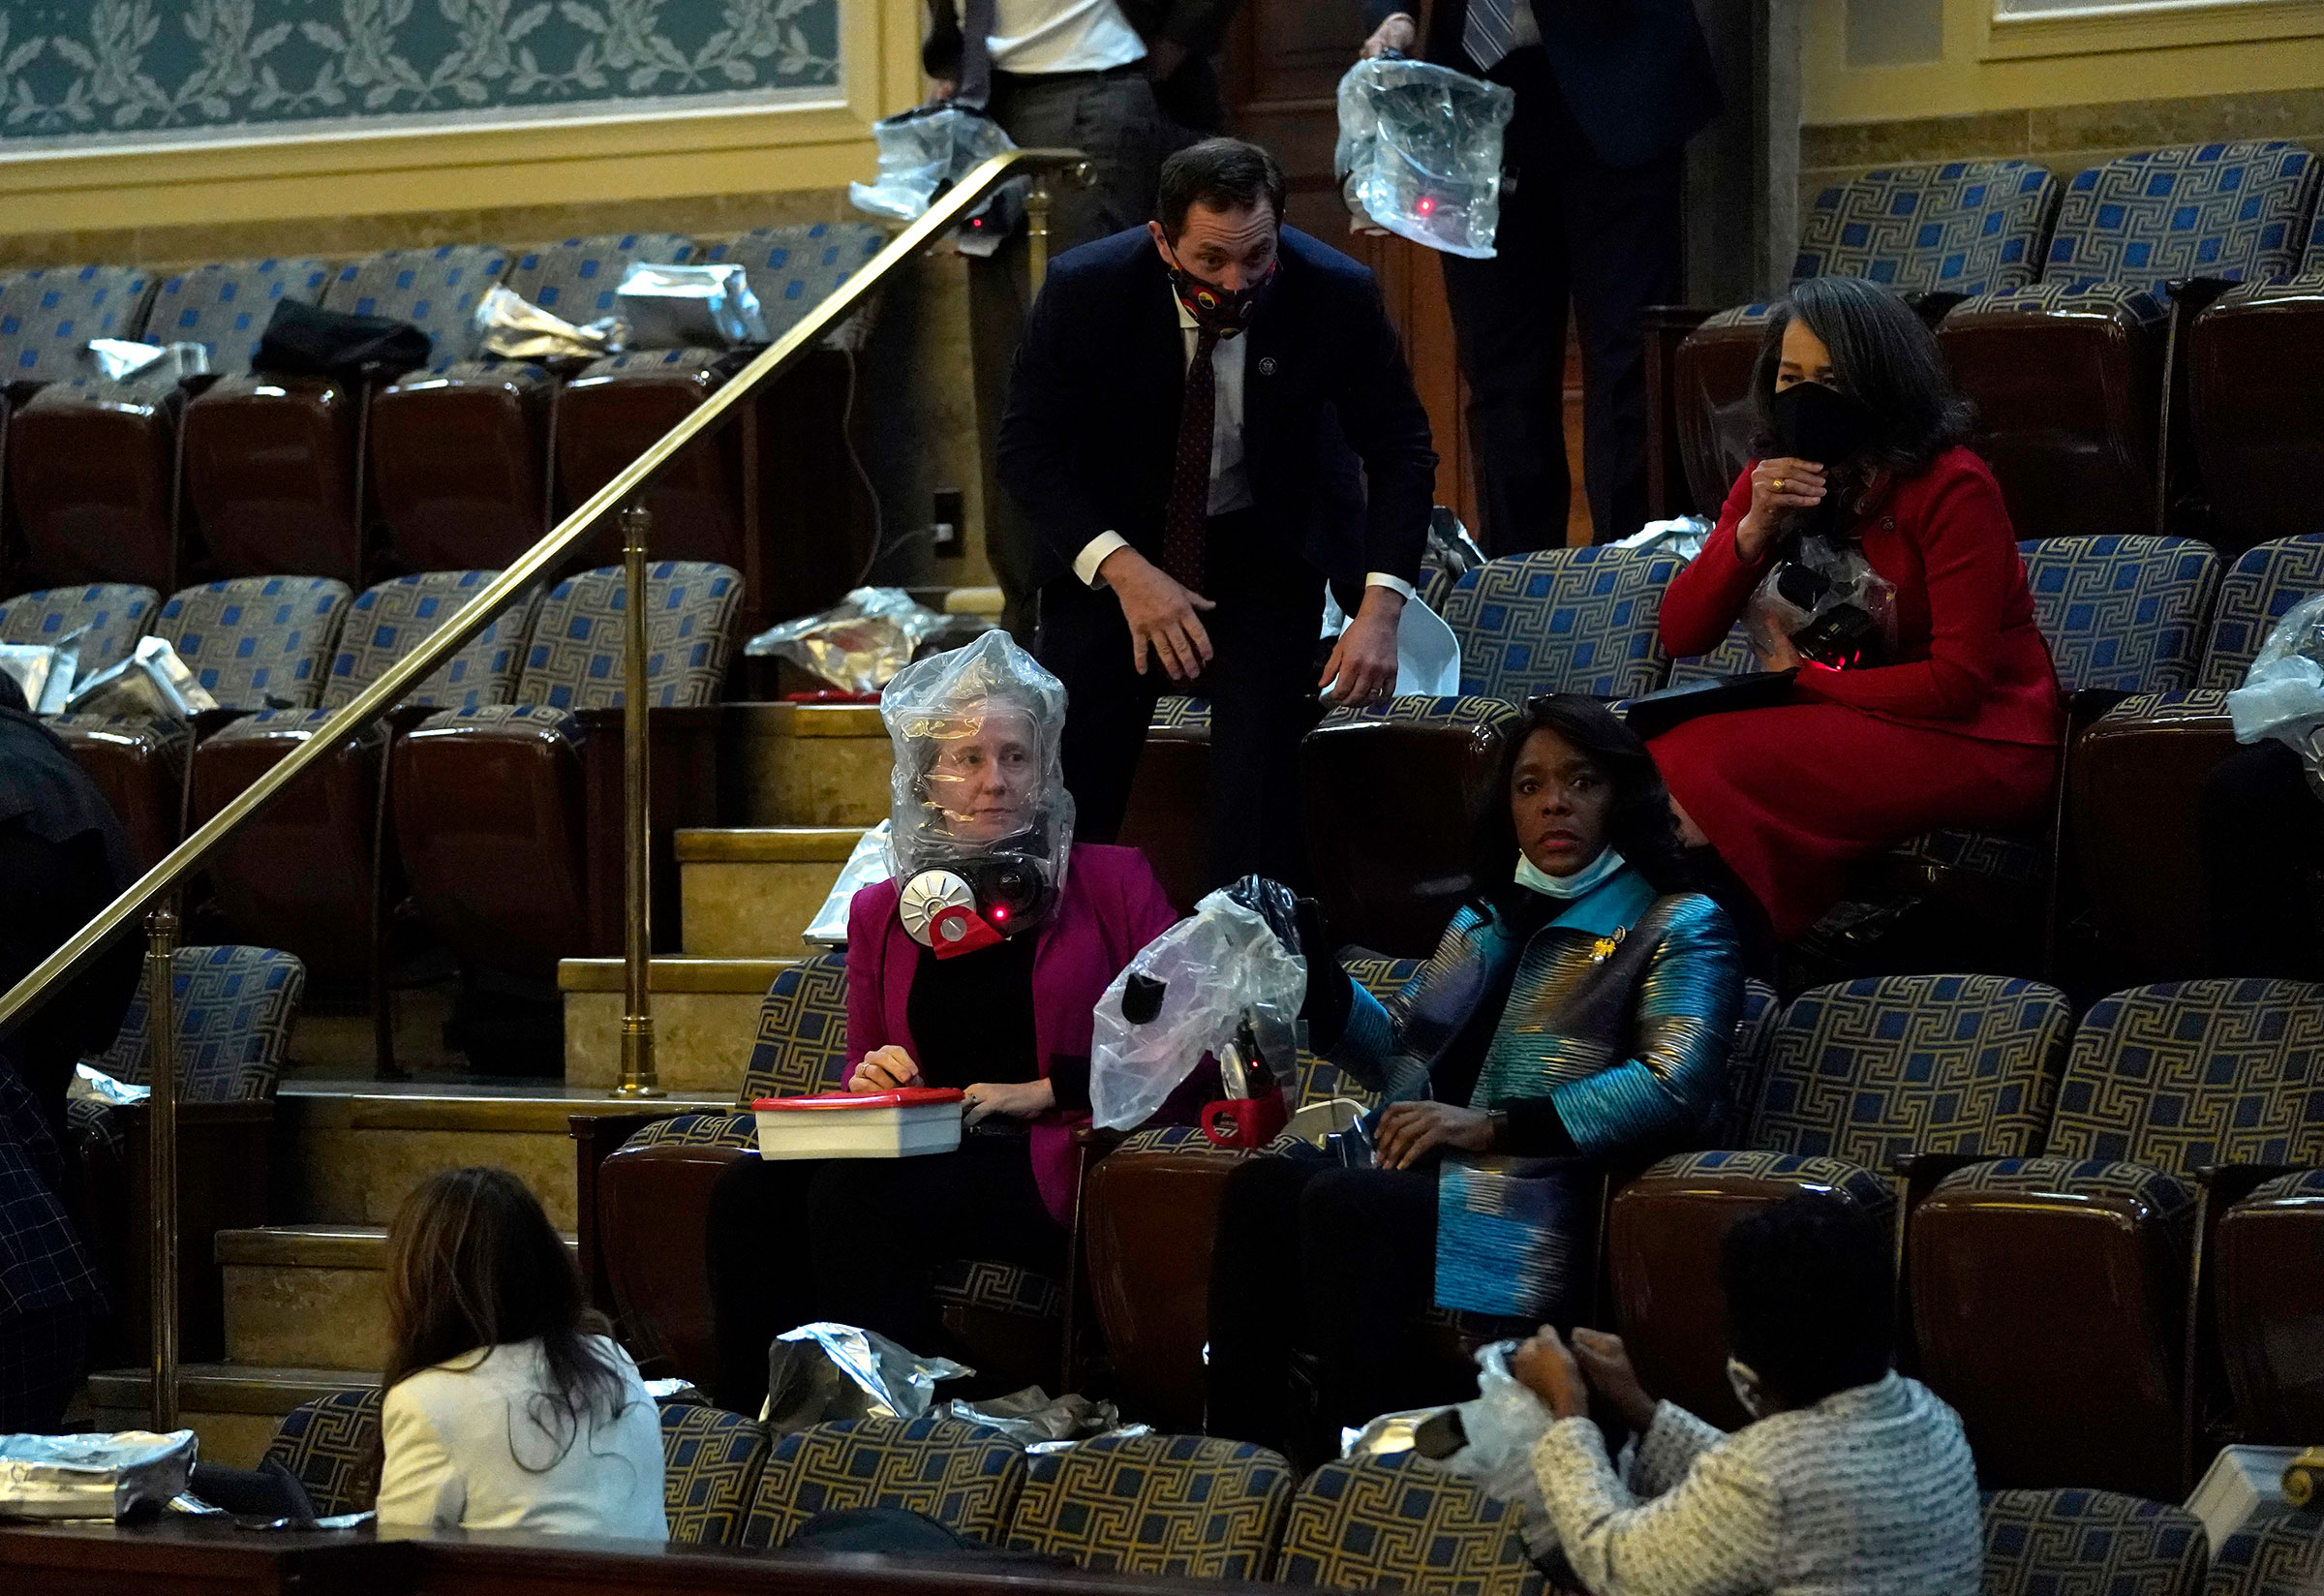 People put on gas masks while sheltering in the House Chamber.